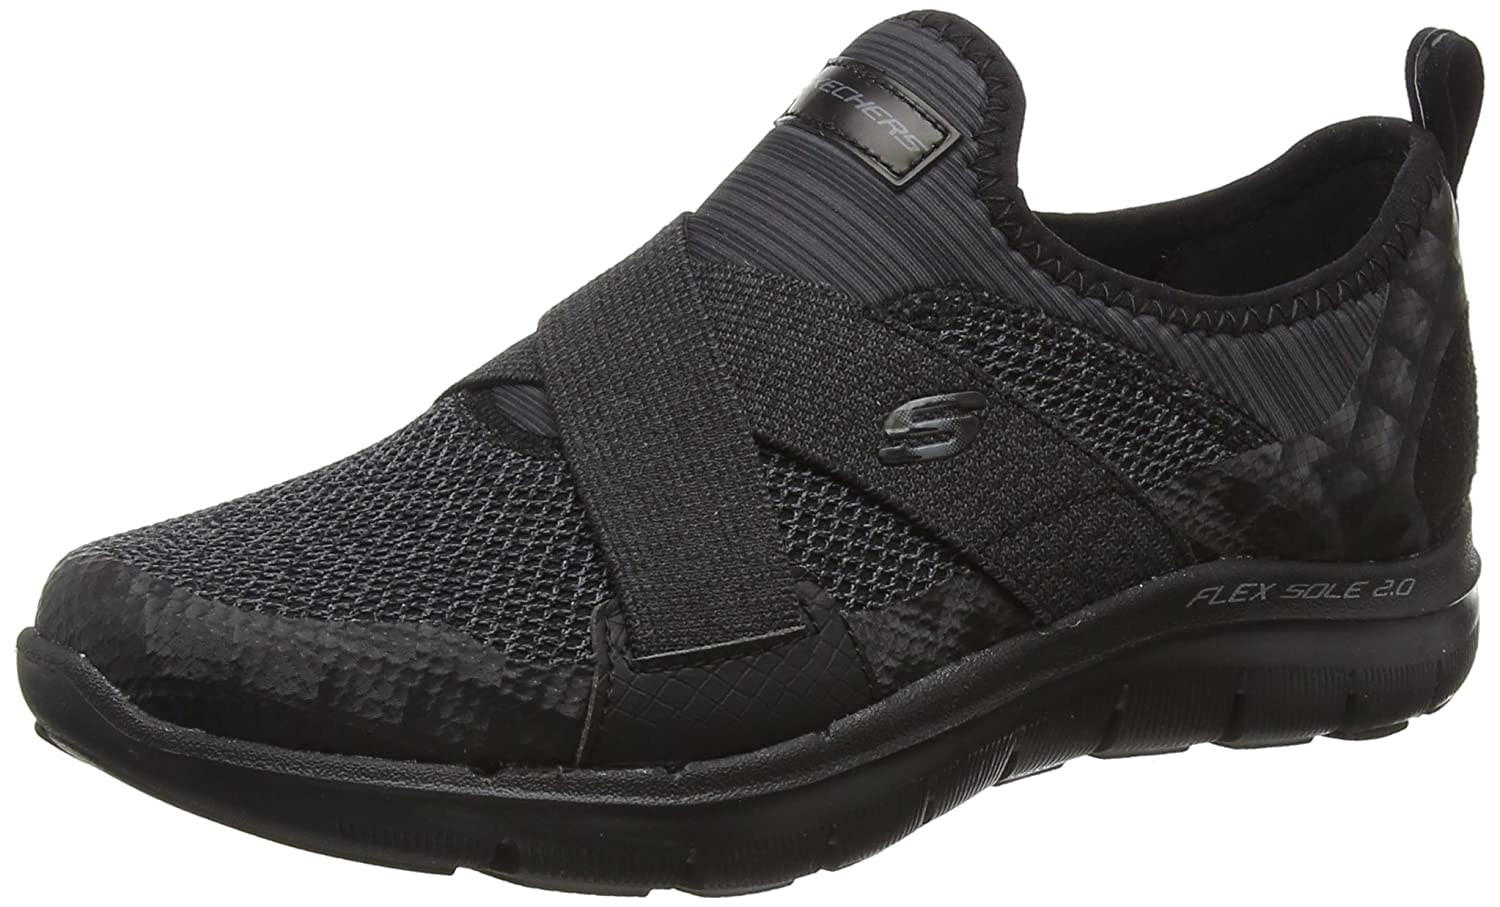 Skechers Women's Flex Appeal New Image Sneaker B01ET25HWA 5.5 B(M) US|Black